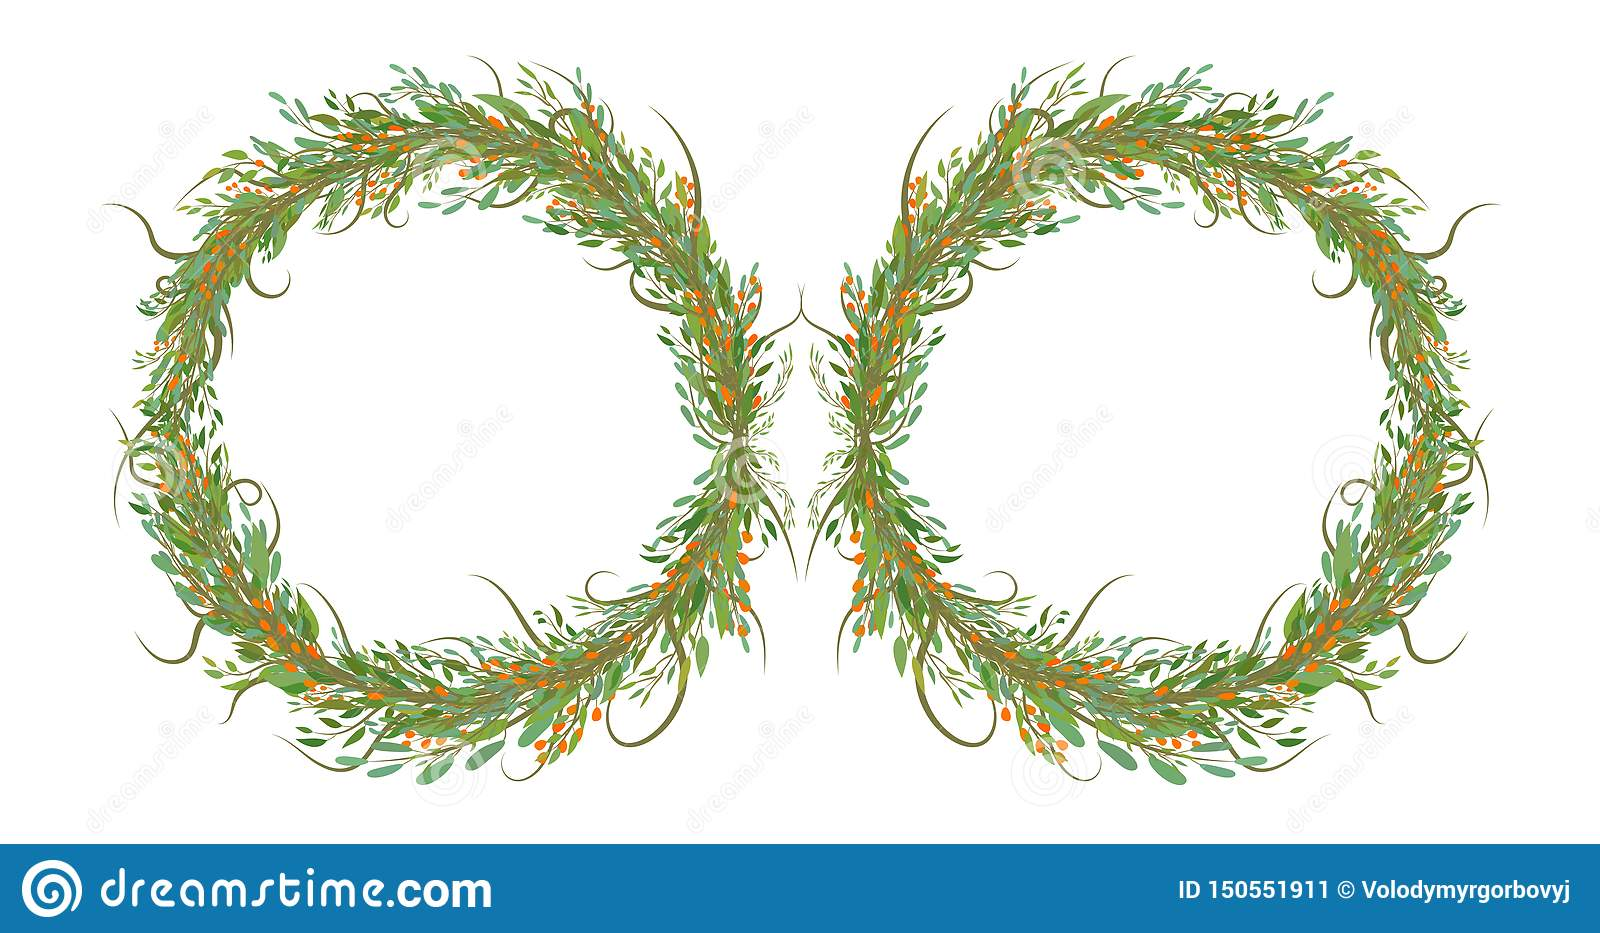 Two circles of flowers with leafs